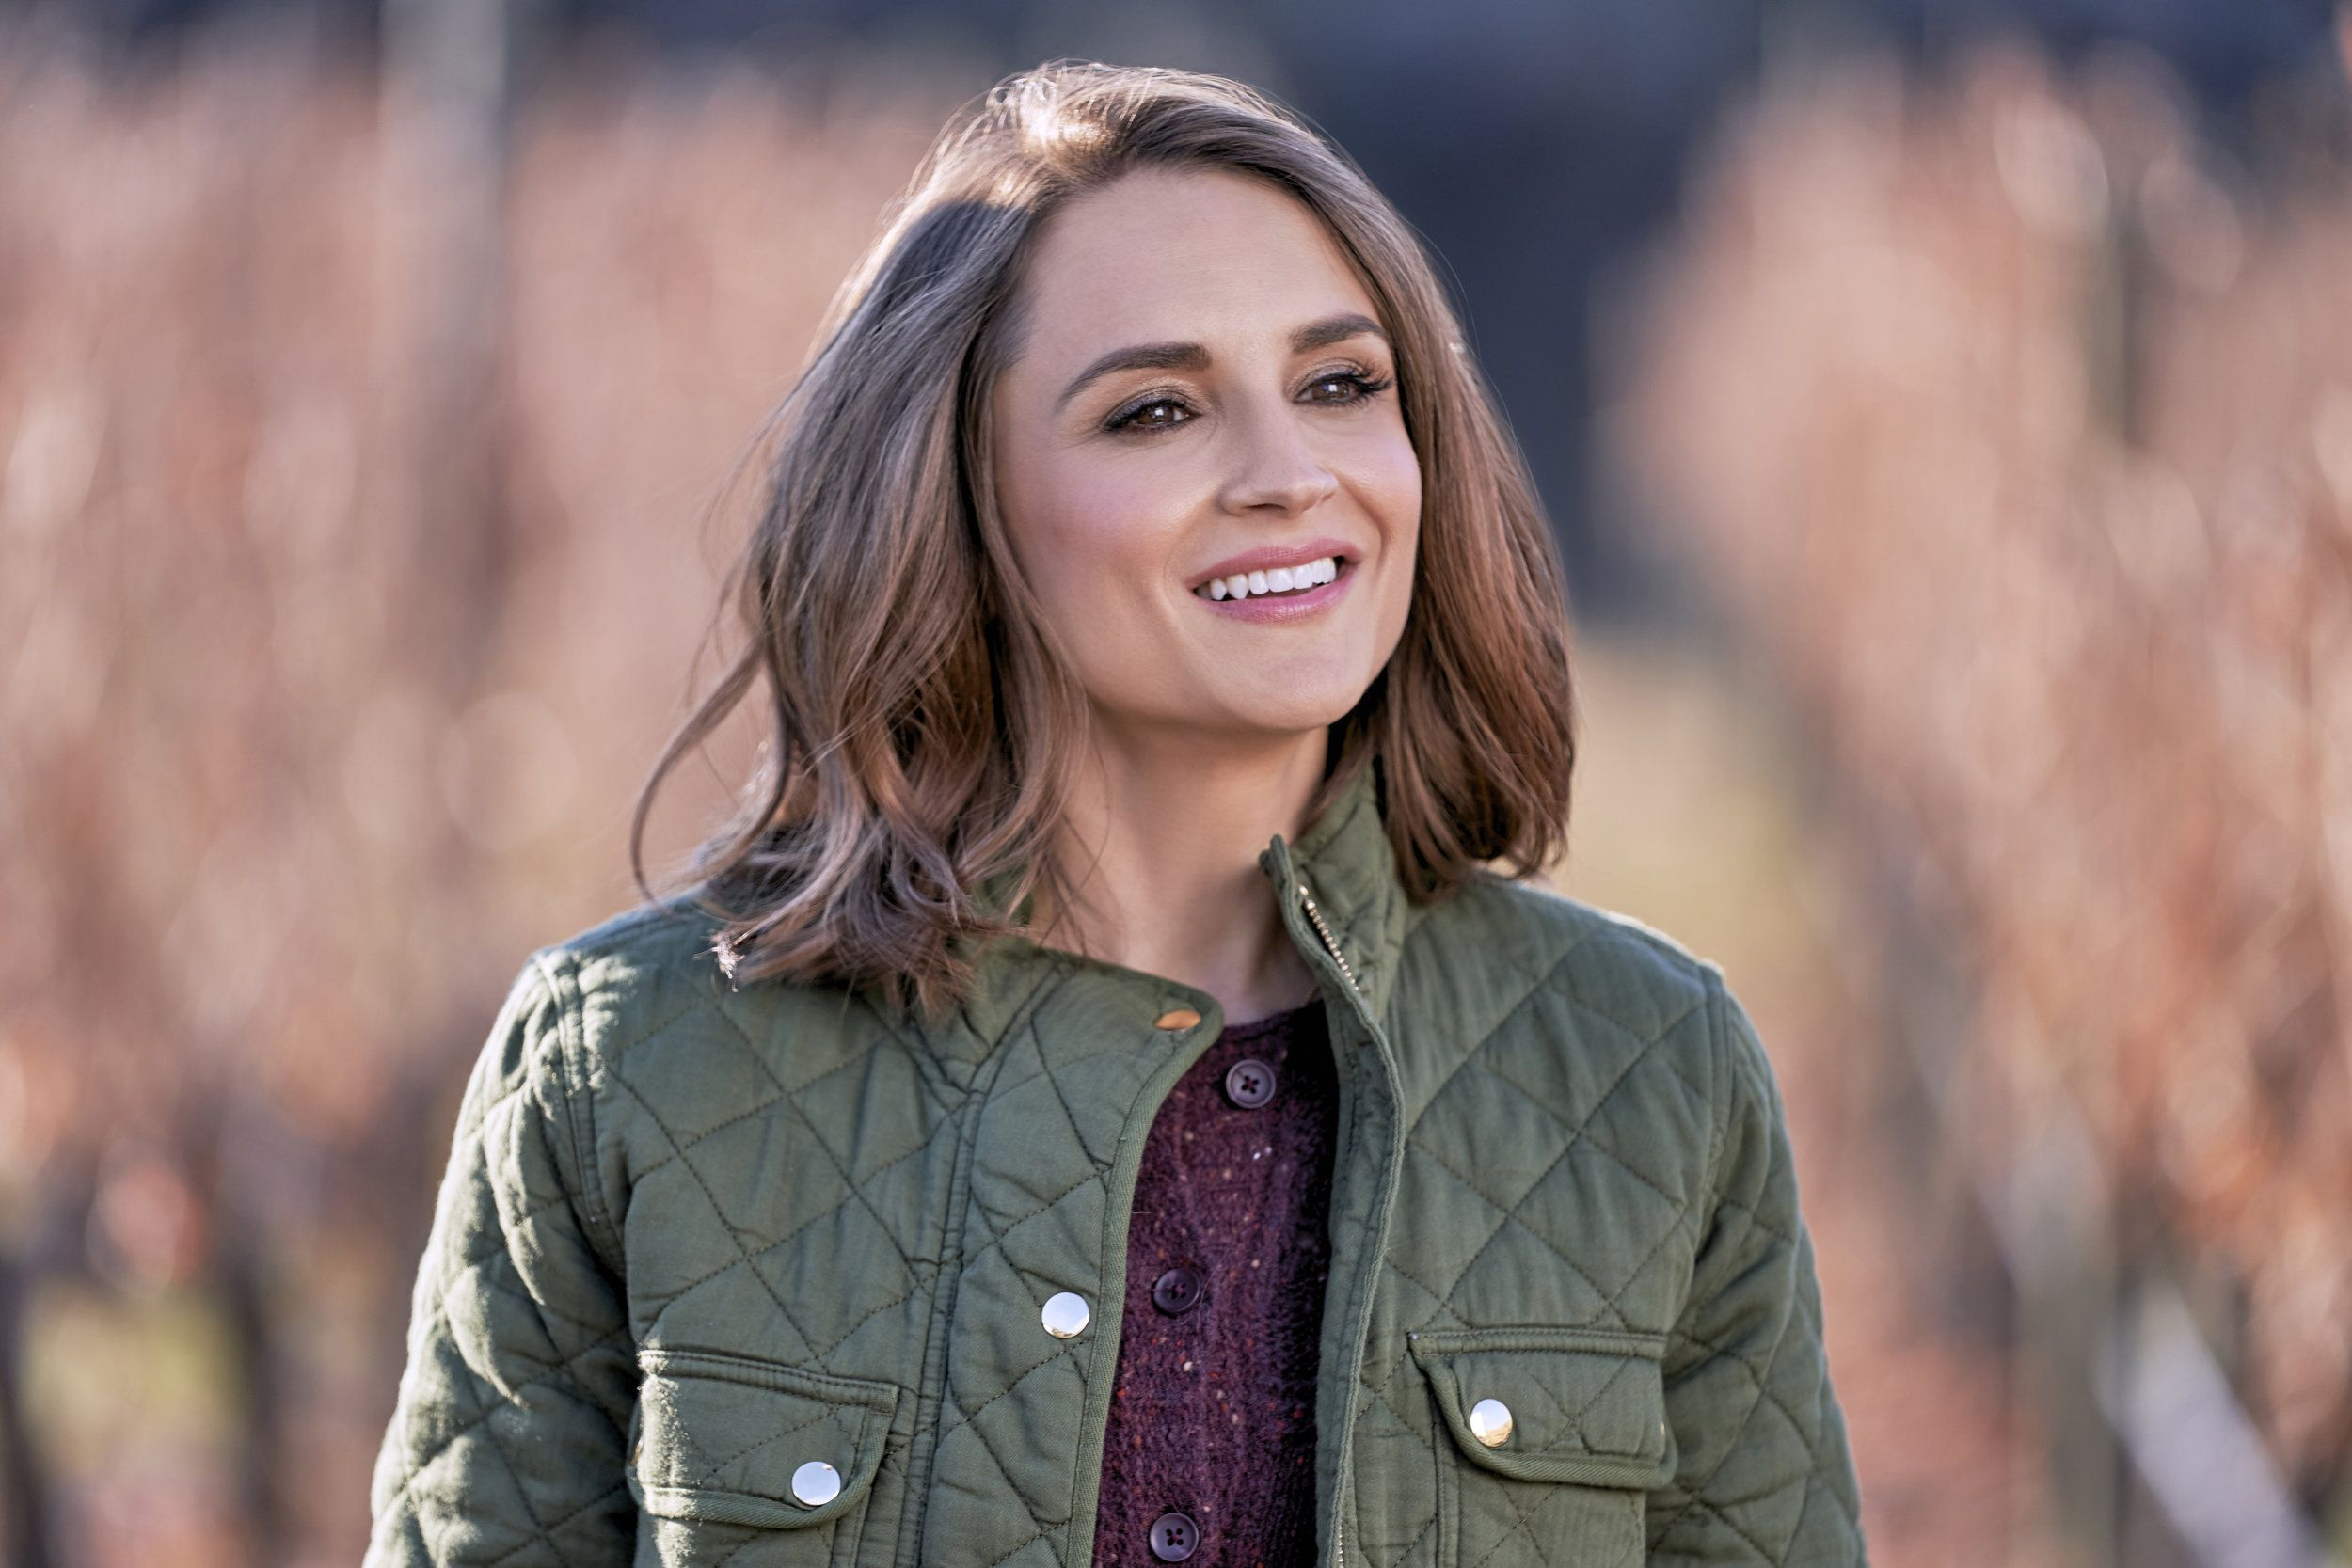 Go Behind The Scenes Of Valentine In The Vineyard Starring Rachael Leigh Cook And Brendan Penny Rachel Leigh Cook Rachael Leigh Cook Rachel